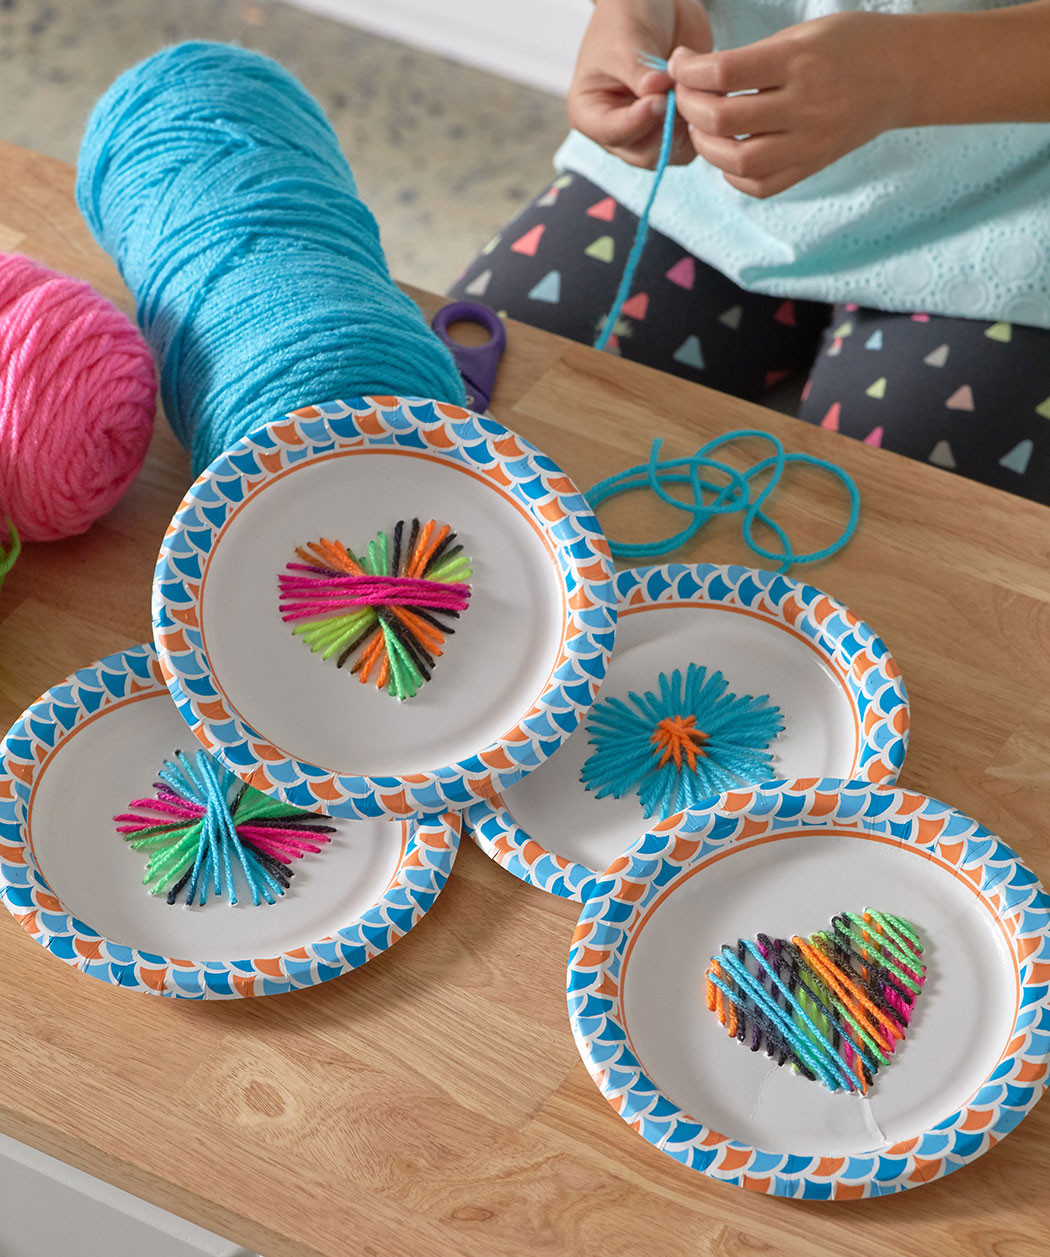 Best ideas about Craft Ideas Kids . Save or Pin 18 Cool Kids Crafts Ideas Now.